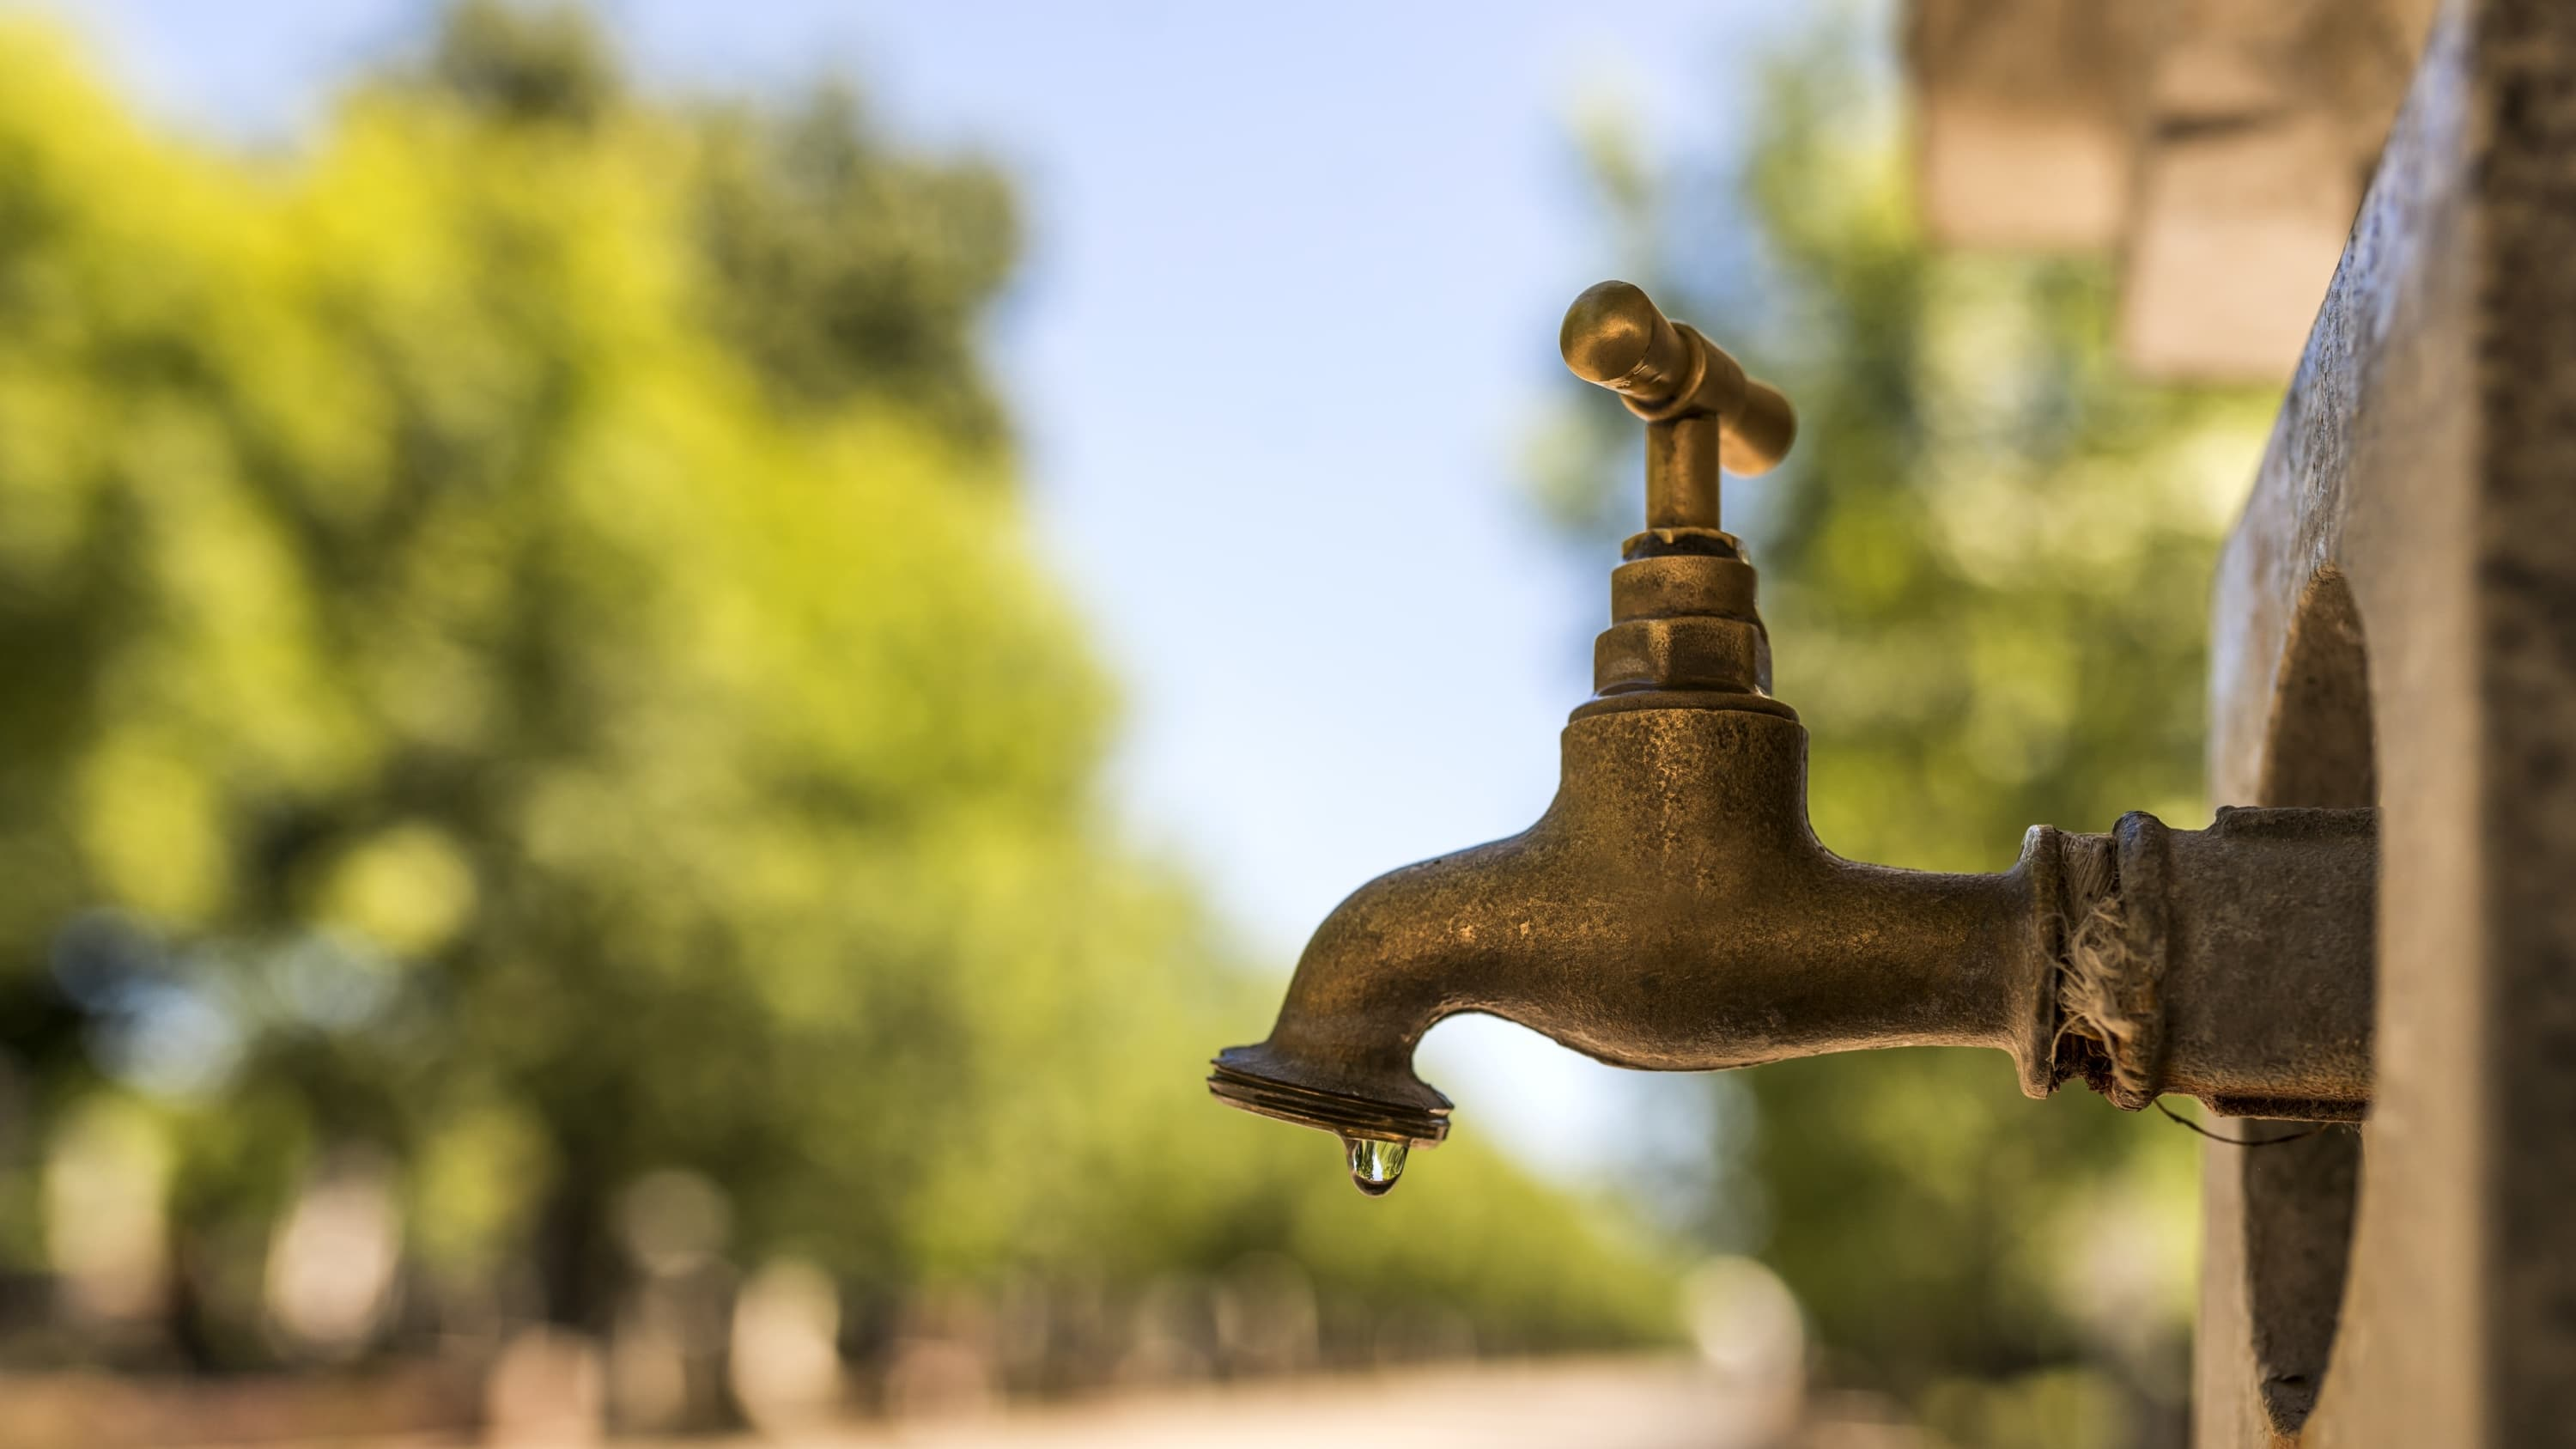 leaky faucet meant to symbolize common urination problems